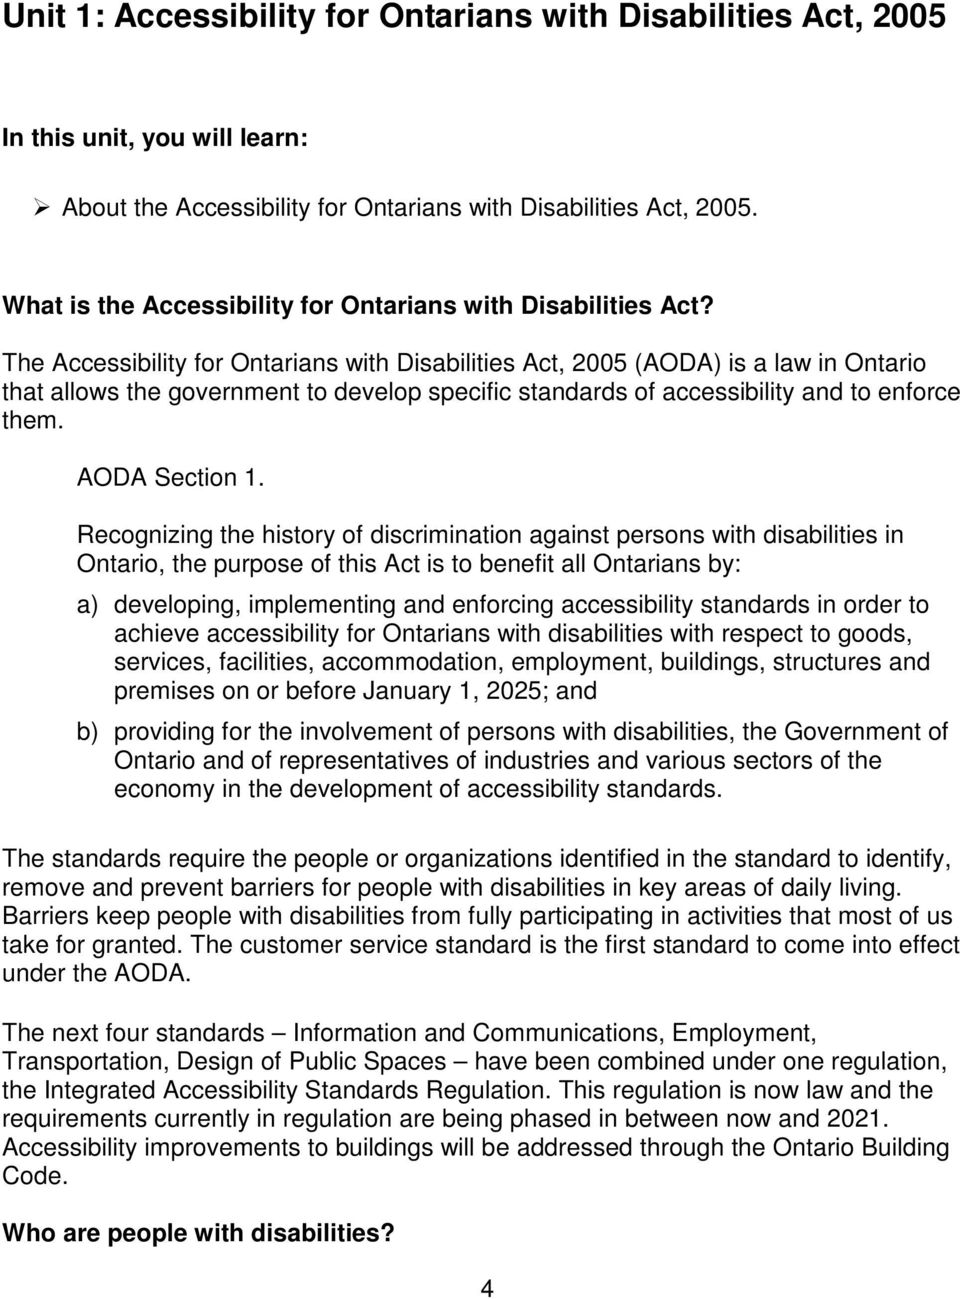 The Accessibility for Ontarians with Disabilities Act, 2005 (AODA) is a law in Ontario that allows the government to develop specific standards of accessibility and to enforce them. AODA Section 1.